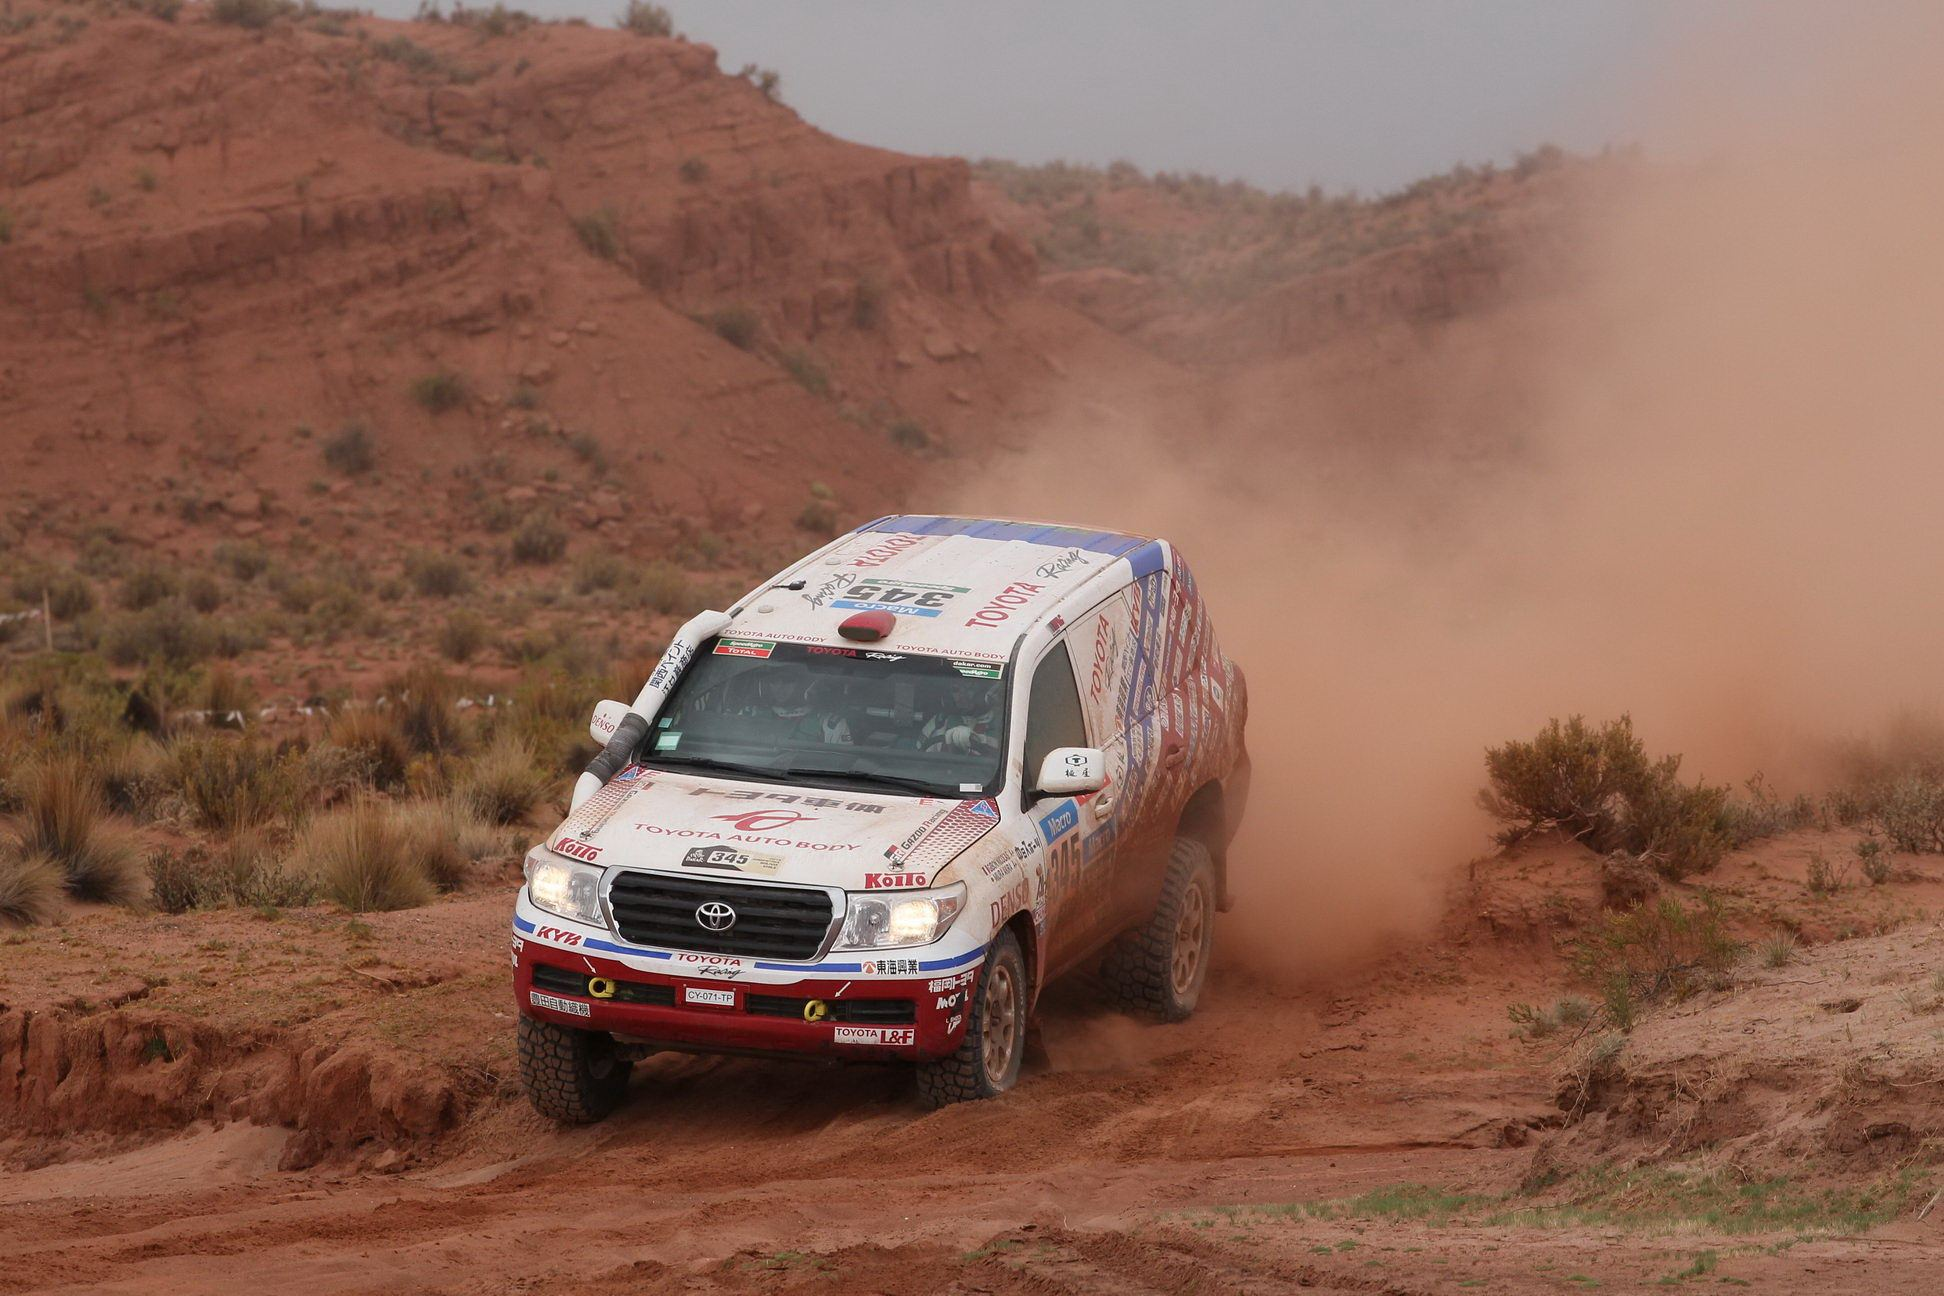 Team Land Cruiser in the Production Category held onto 1st and 2nd at the finish line